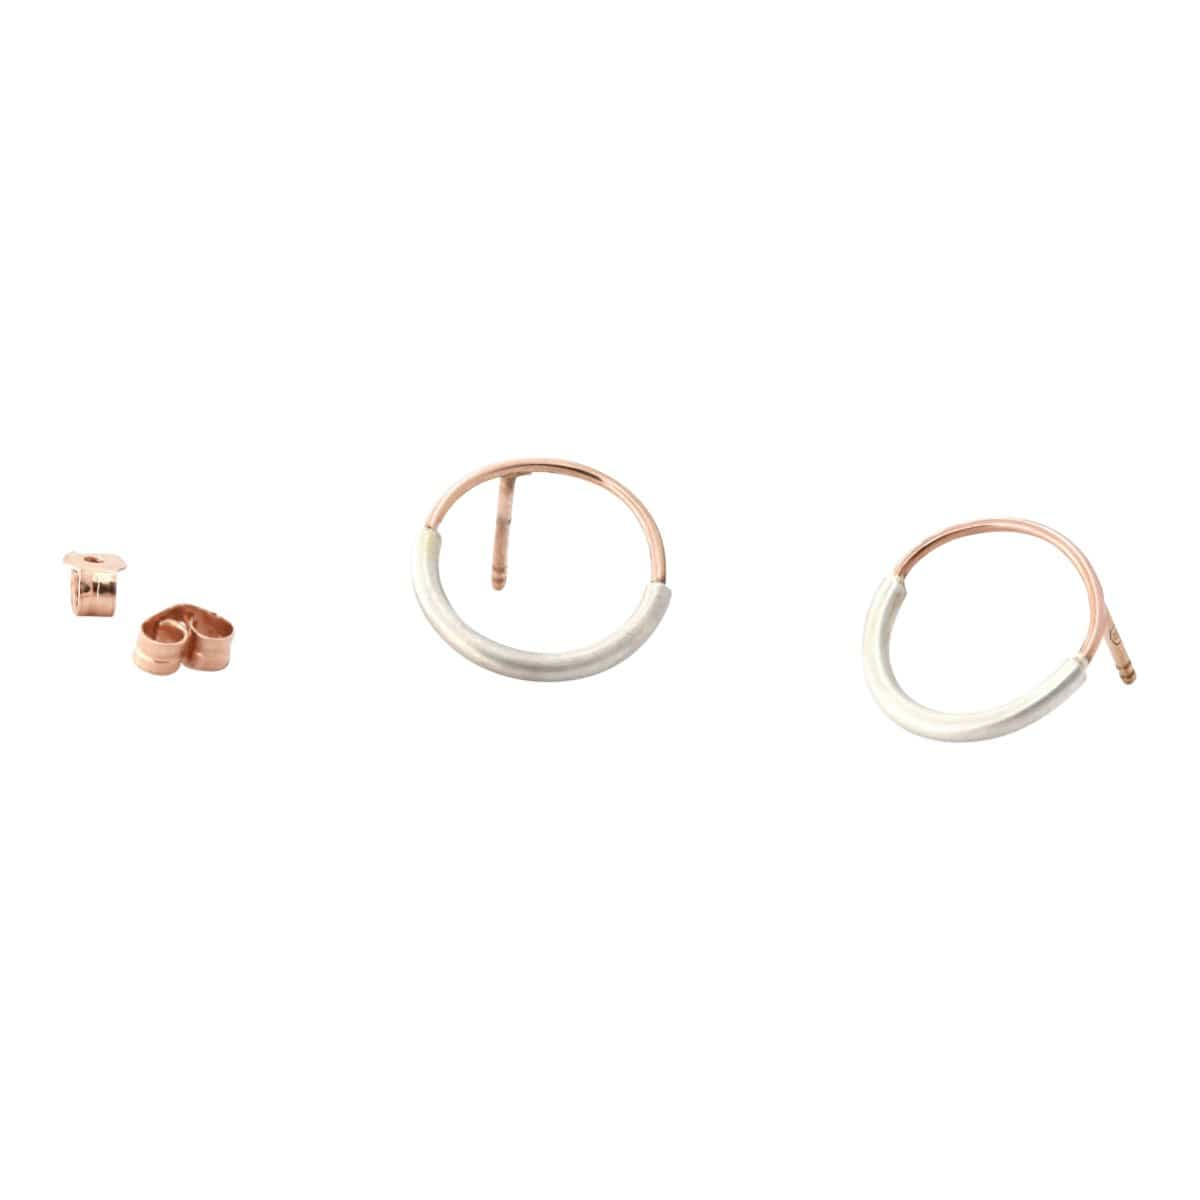 Simplicated Jewelry Stud Earrings Rose Gold + Silver Asymmetric Geometric Hoop Earring